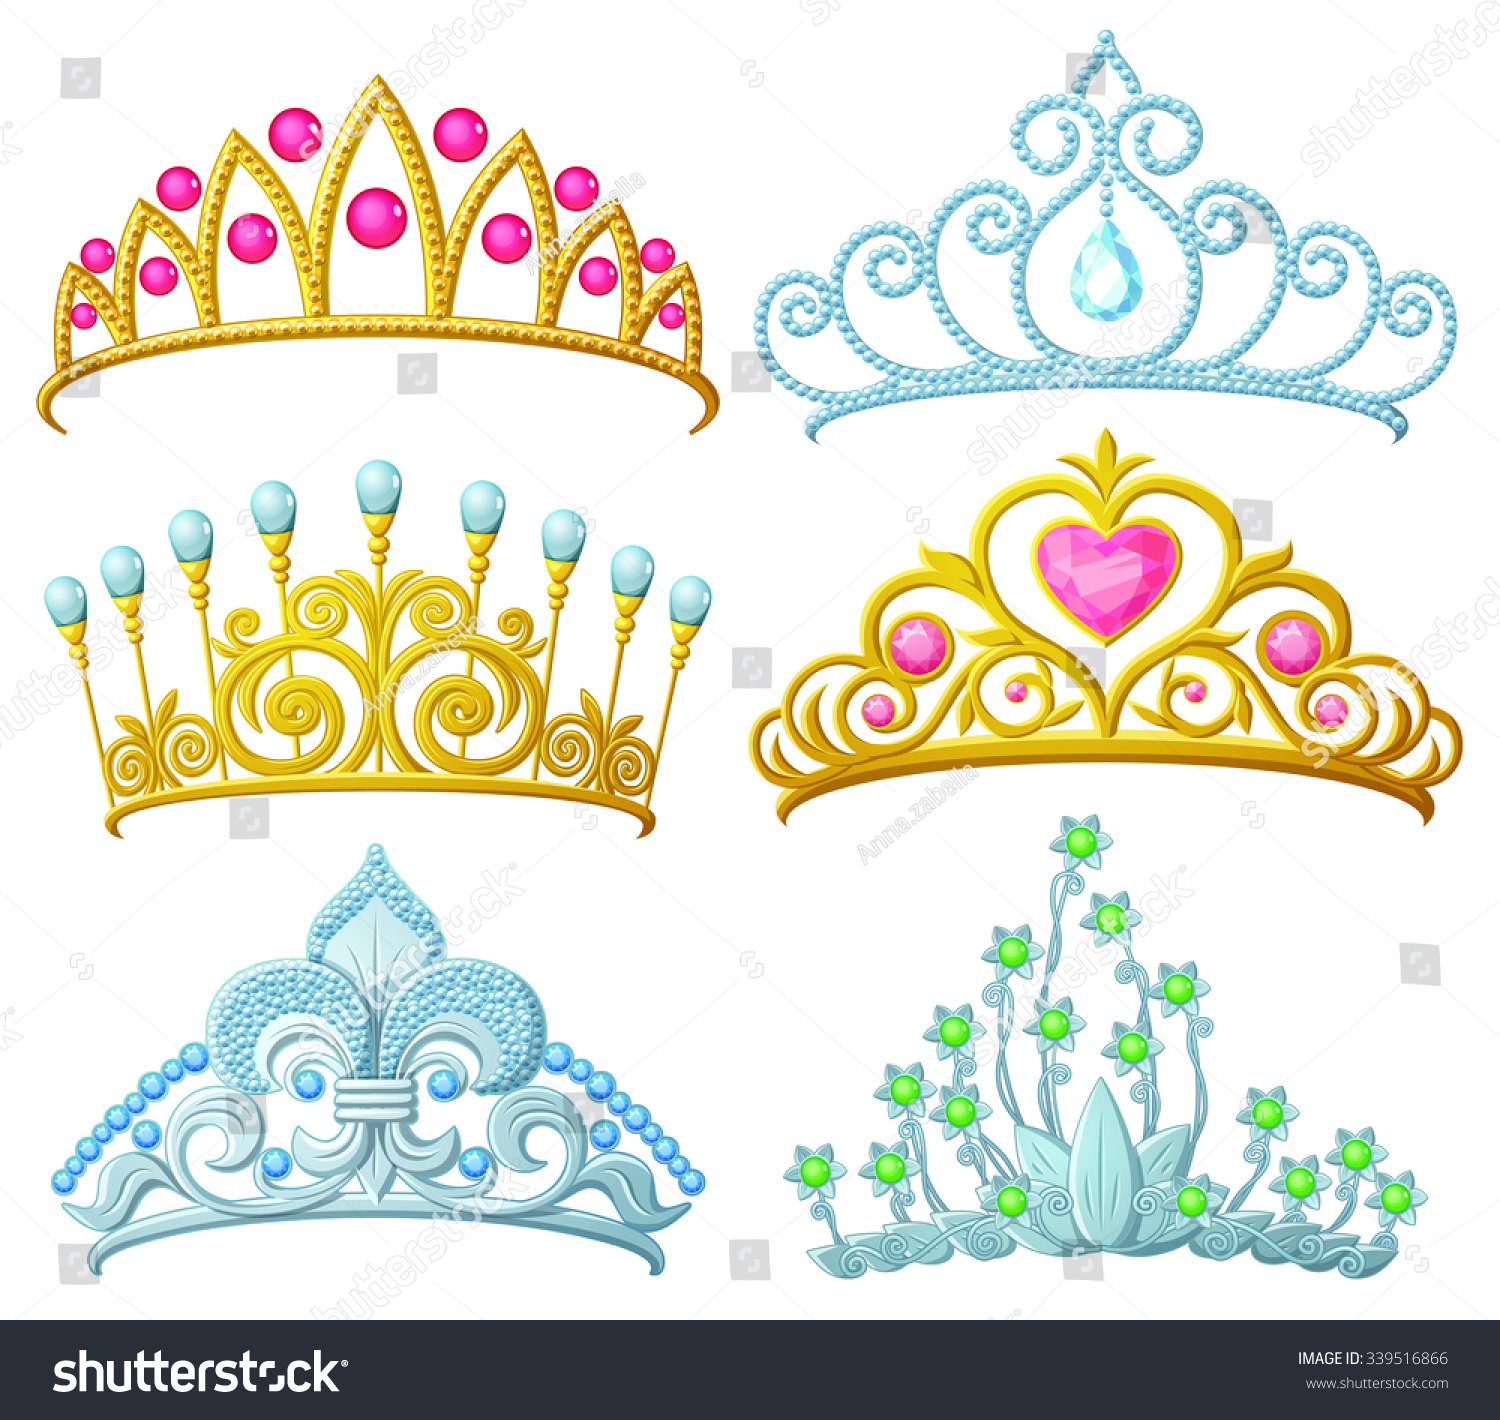 Crowns And Tiaras Vector - set of princess crowns (tiara) isolated on ...